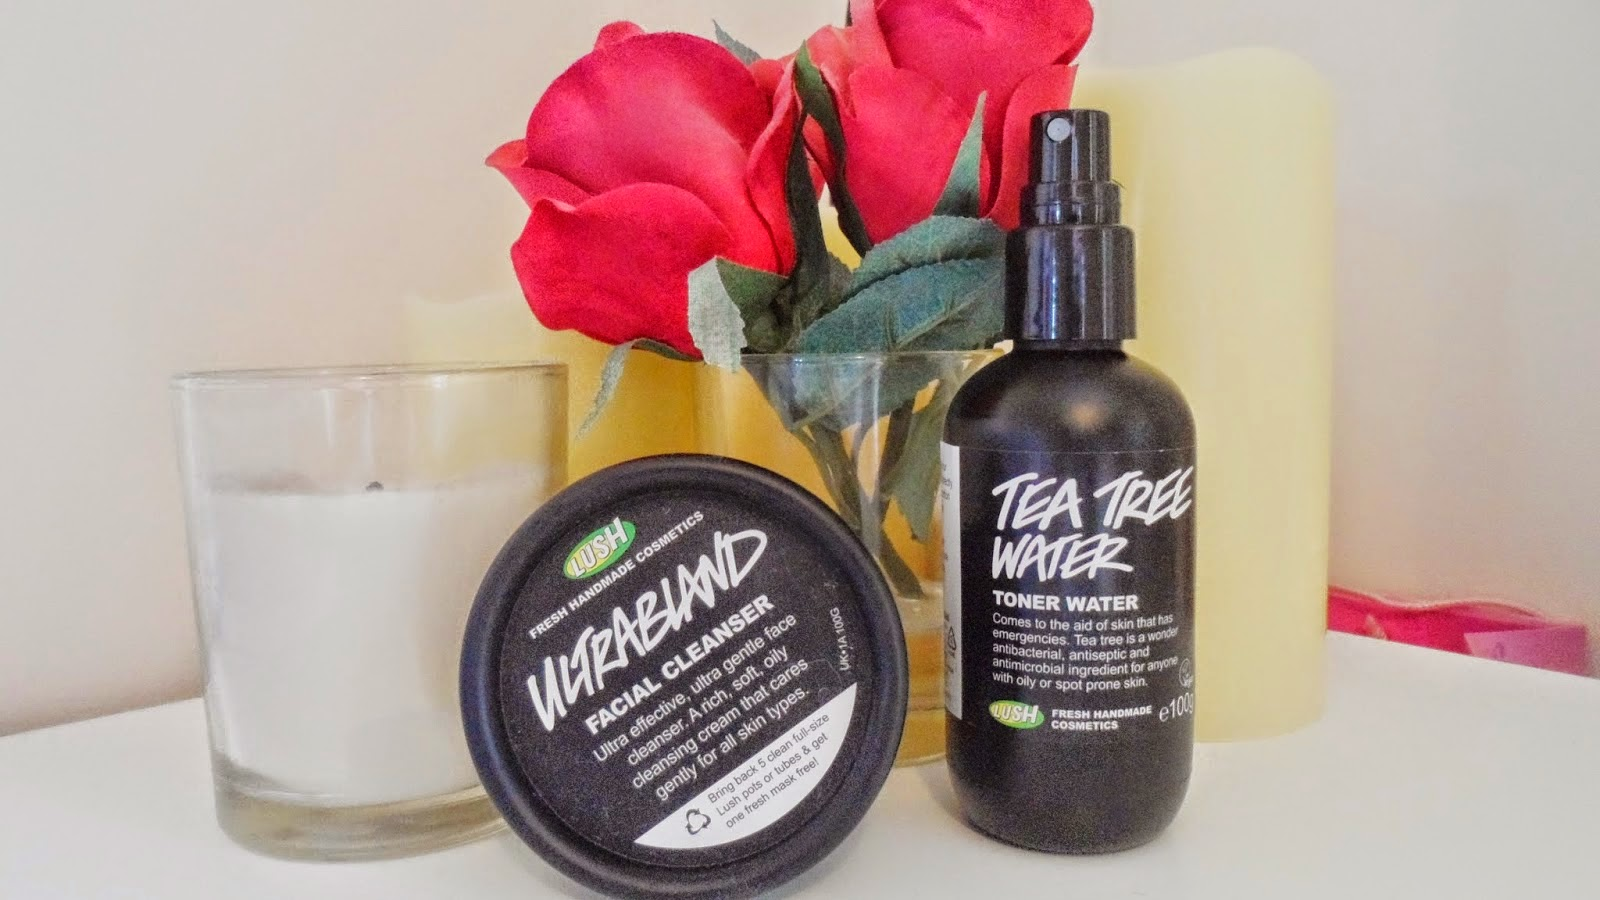 lush skincare ultrabland tea tree water review acne